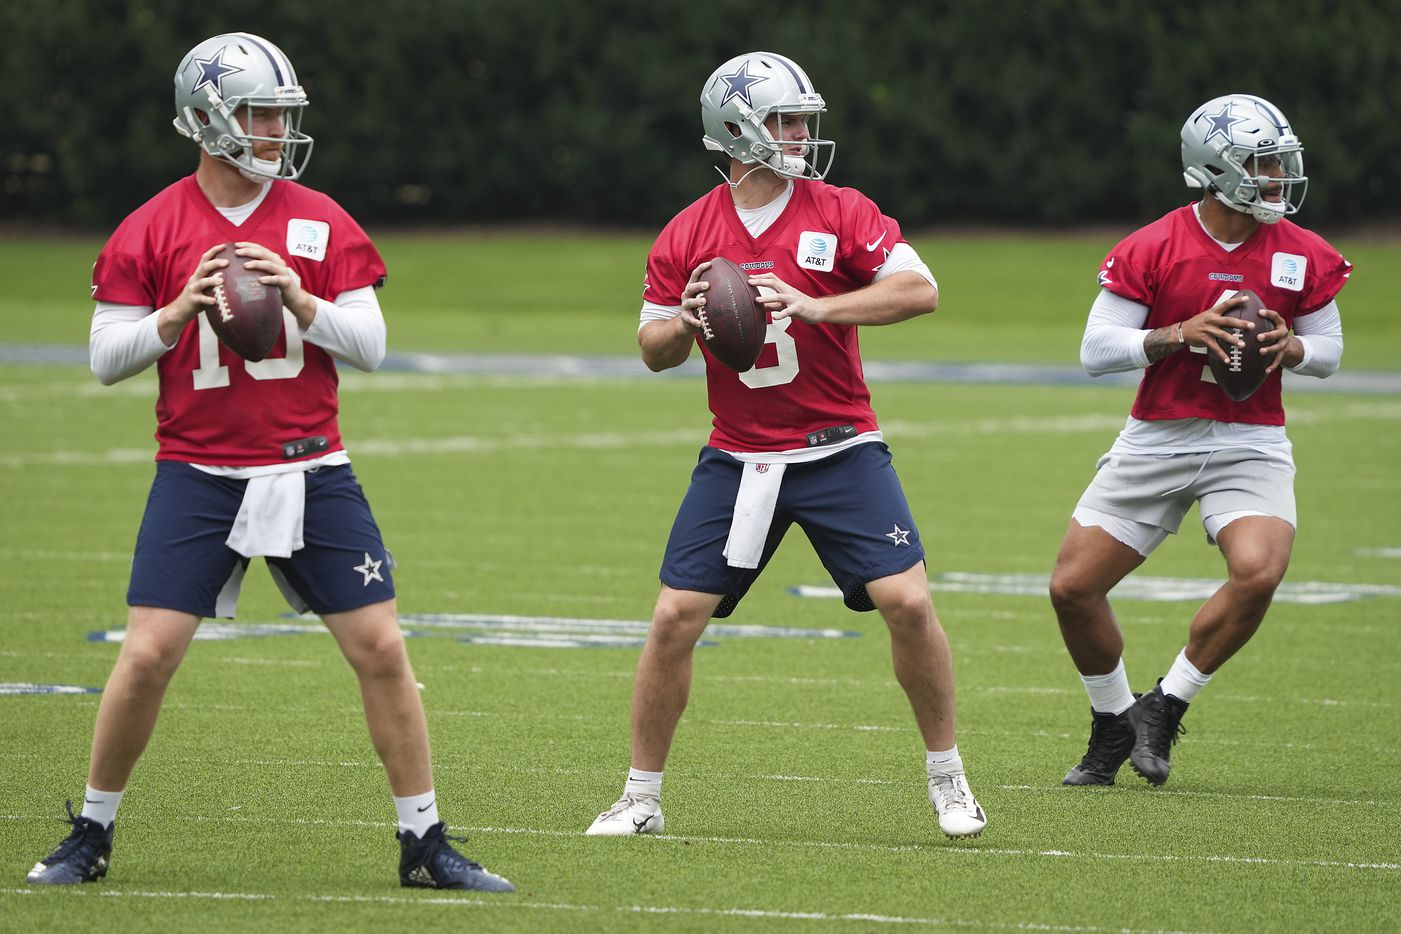 Dallas Cowboys quarterbacks, from left, Cooper Rush, Garrett Gilbert and Dak Prescott participate in a drill during a minicamp practice at The Star on Wednesday, June 9, 2021, in Frisco. (Smiley N. Pool/The Dallas Morning News)